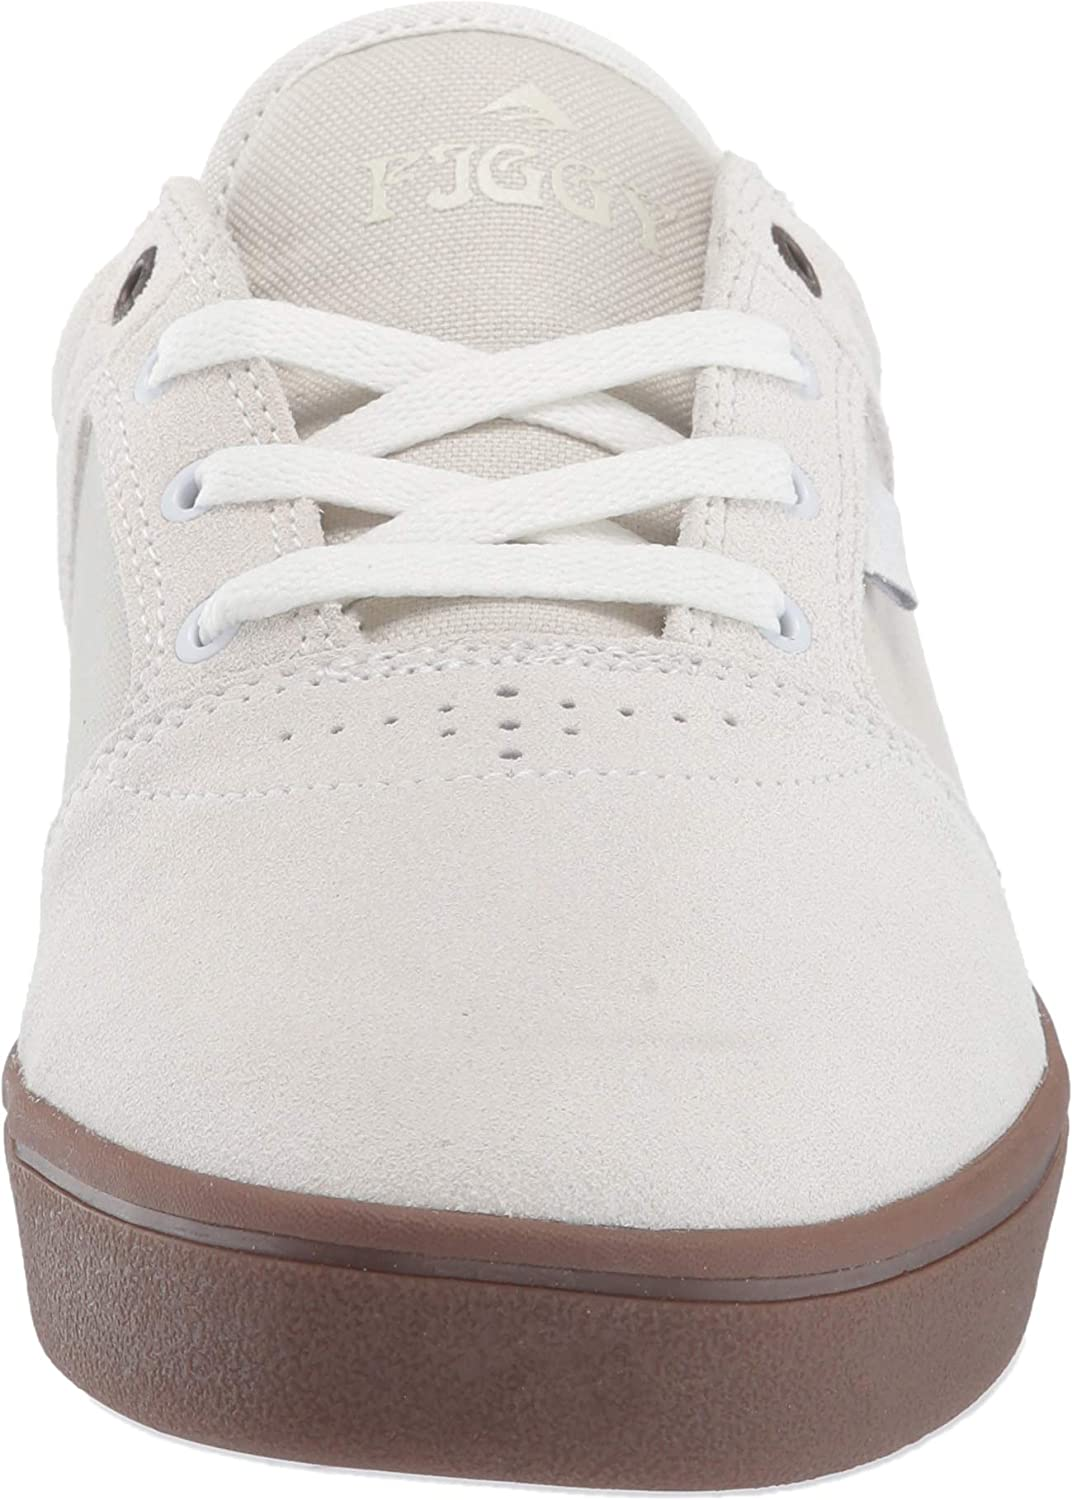 Emerica Figgy doos voor heren, wit rubber, medium White Gum